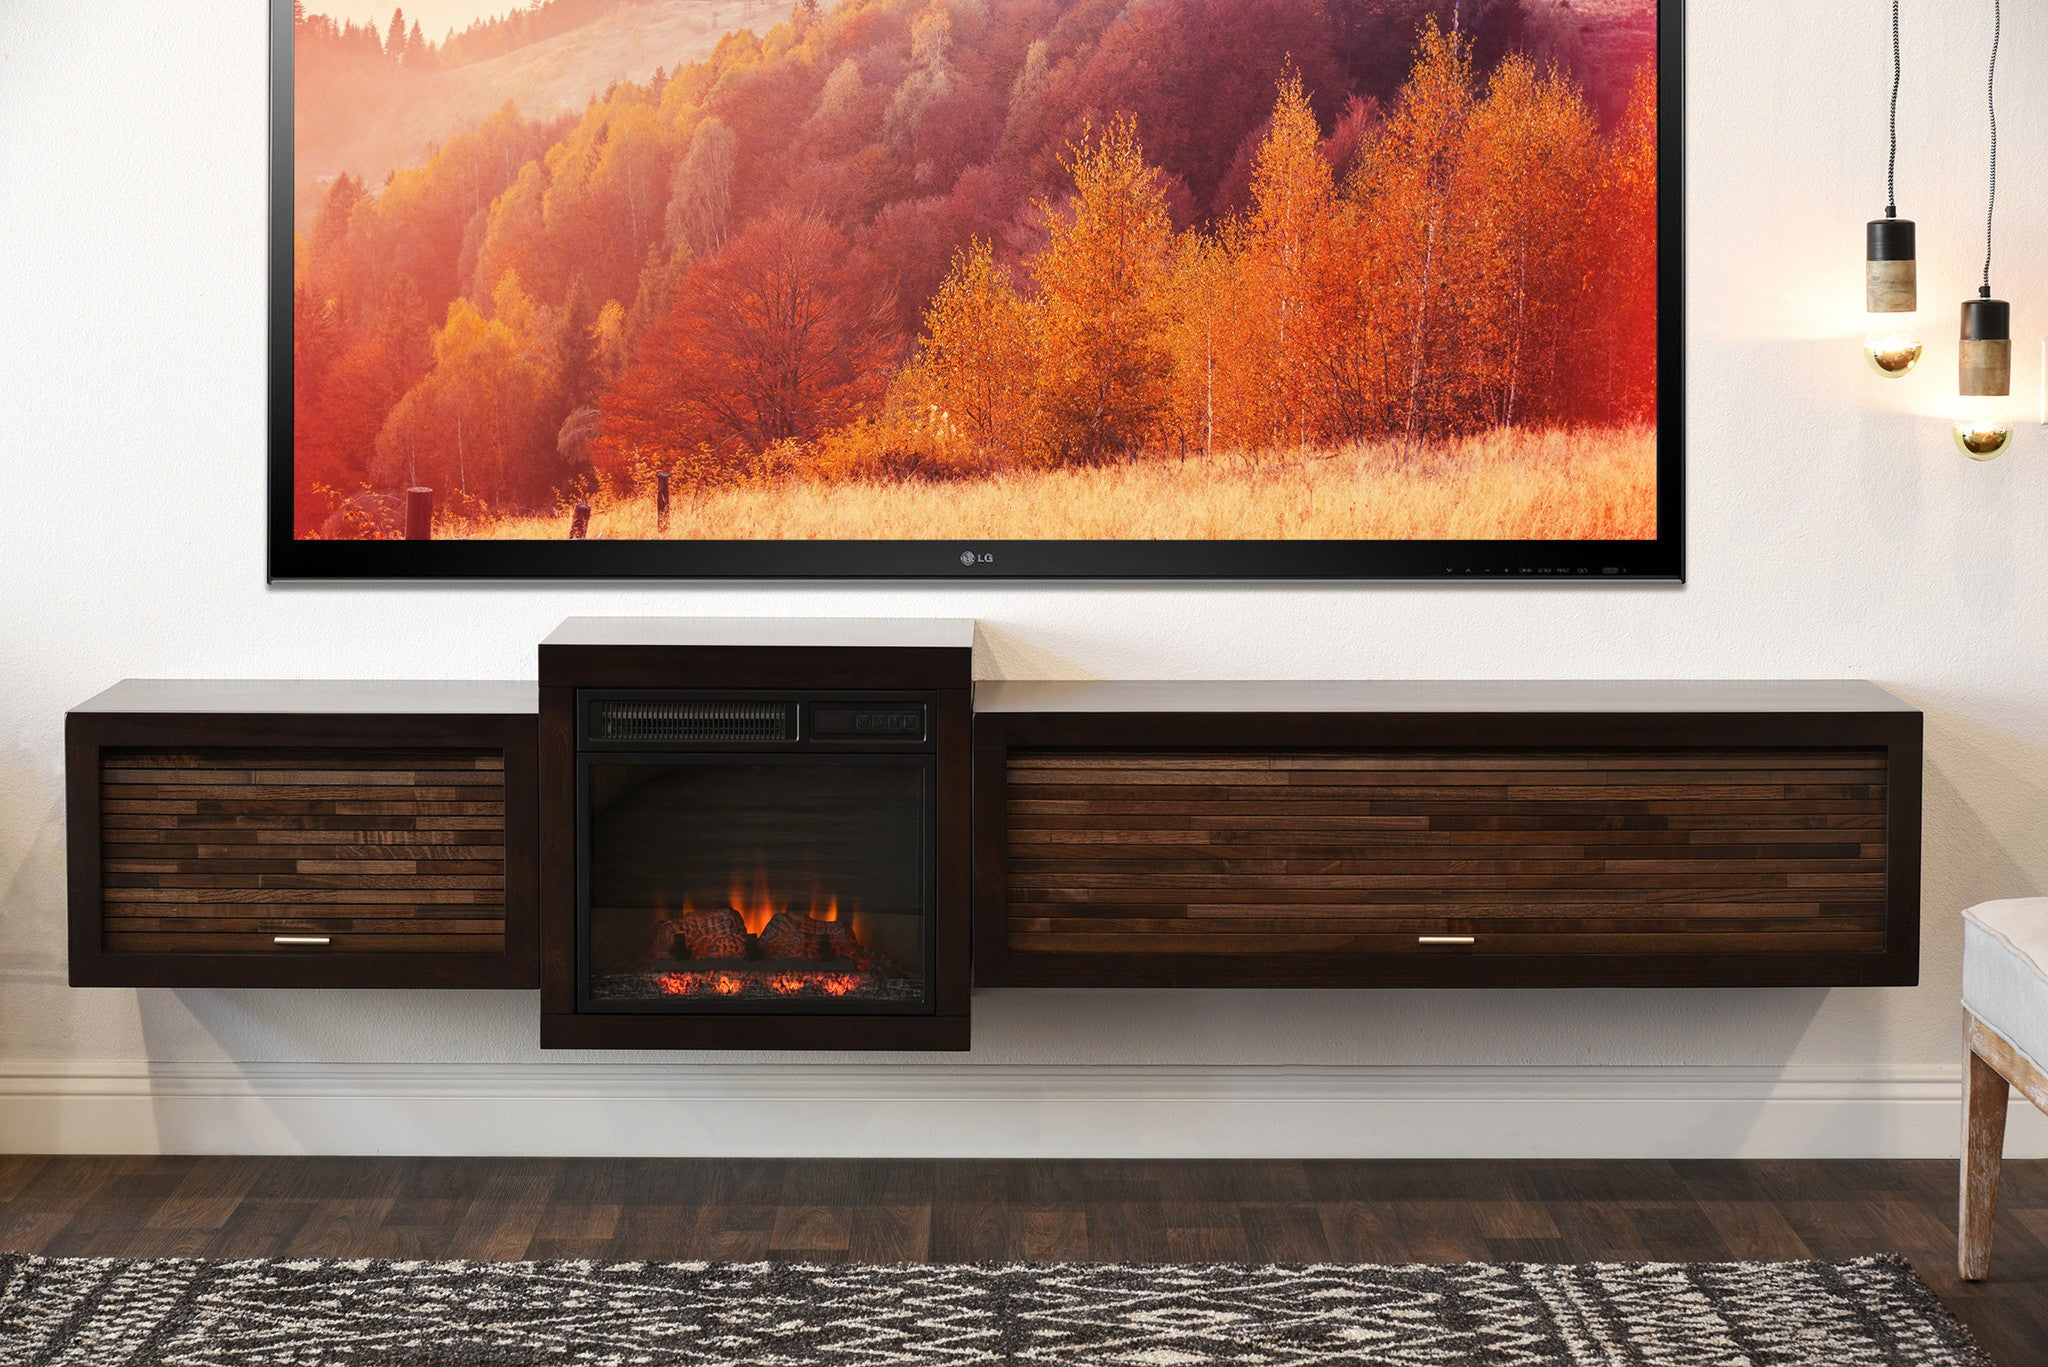 design signature insert item by large and speaker rogness stands fireplaces stand number products with ashley w tv fireplace